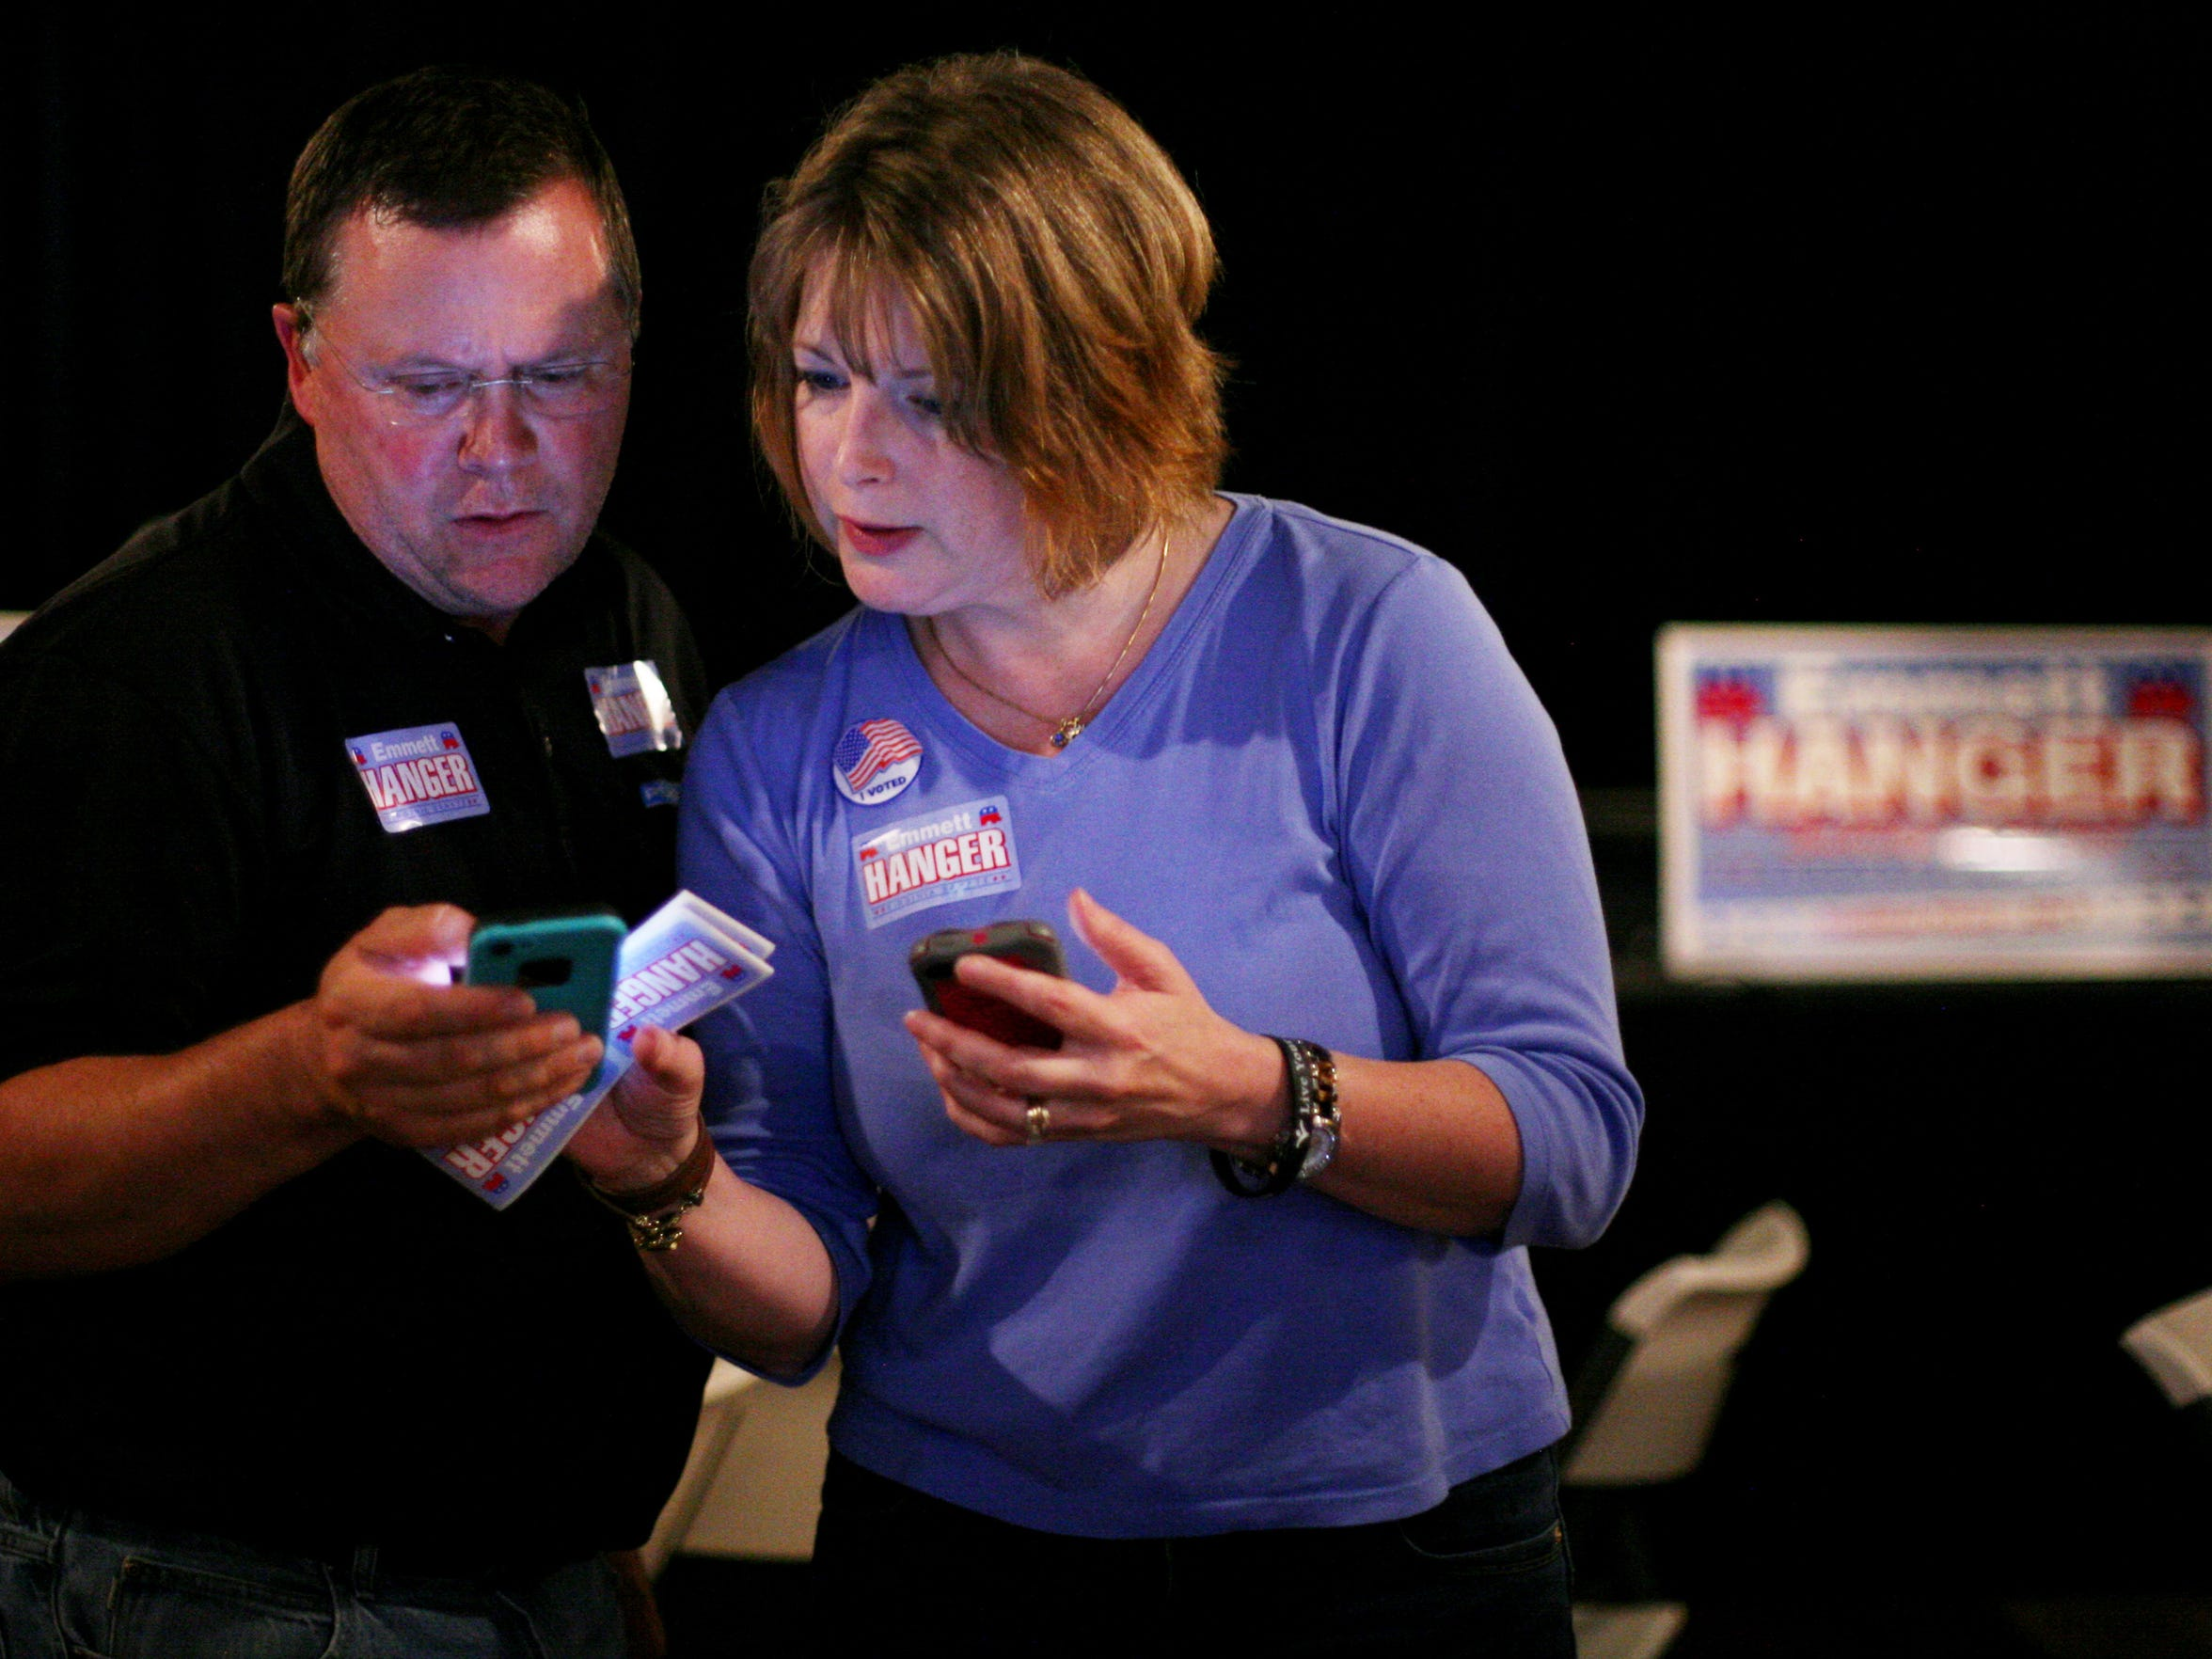 Legislative aide Holly Herman monitors the vote counts in the Republican primary race for the District 24 state Senate seat on her phone with husband Randy at the Clocktower Restaurant & Bar in downtown Staunton on Tuesday, June 9, 2015. The Hanger campaign organized a party to watch election results.